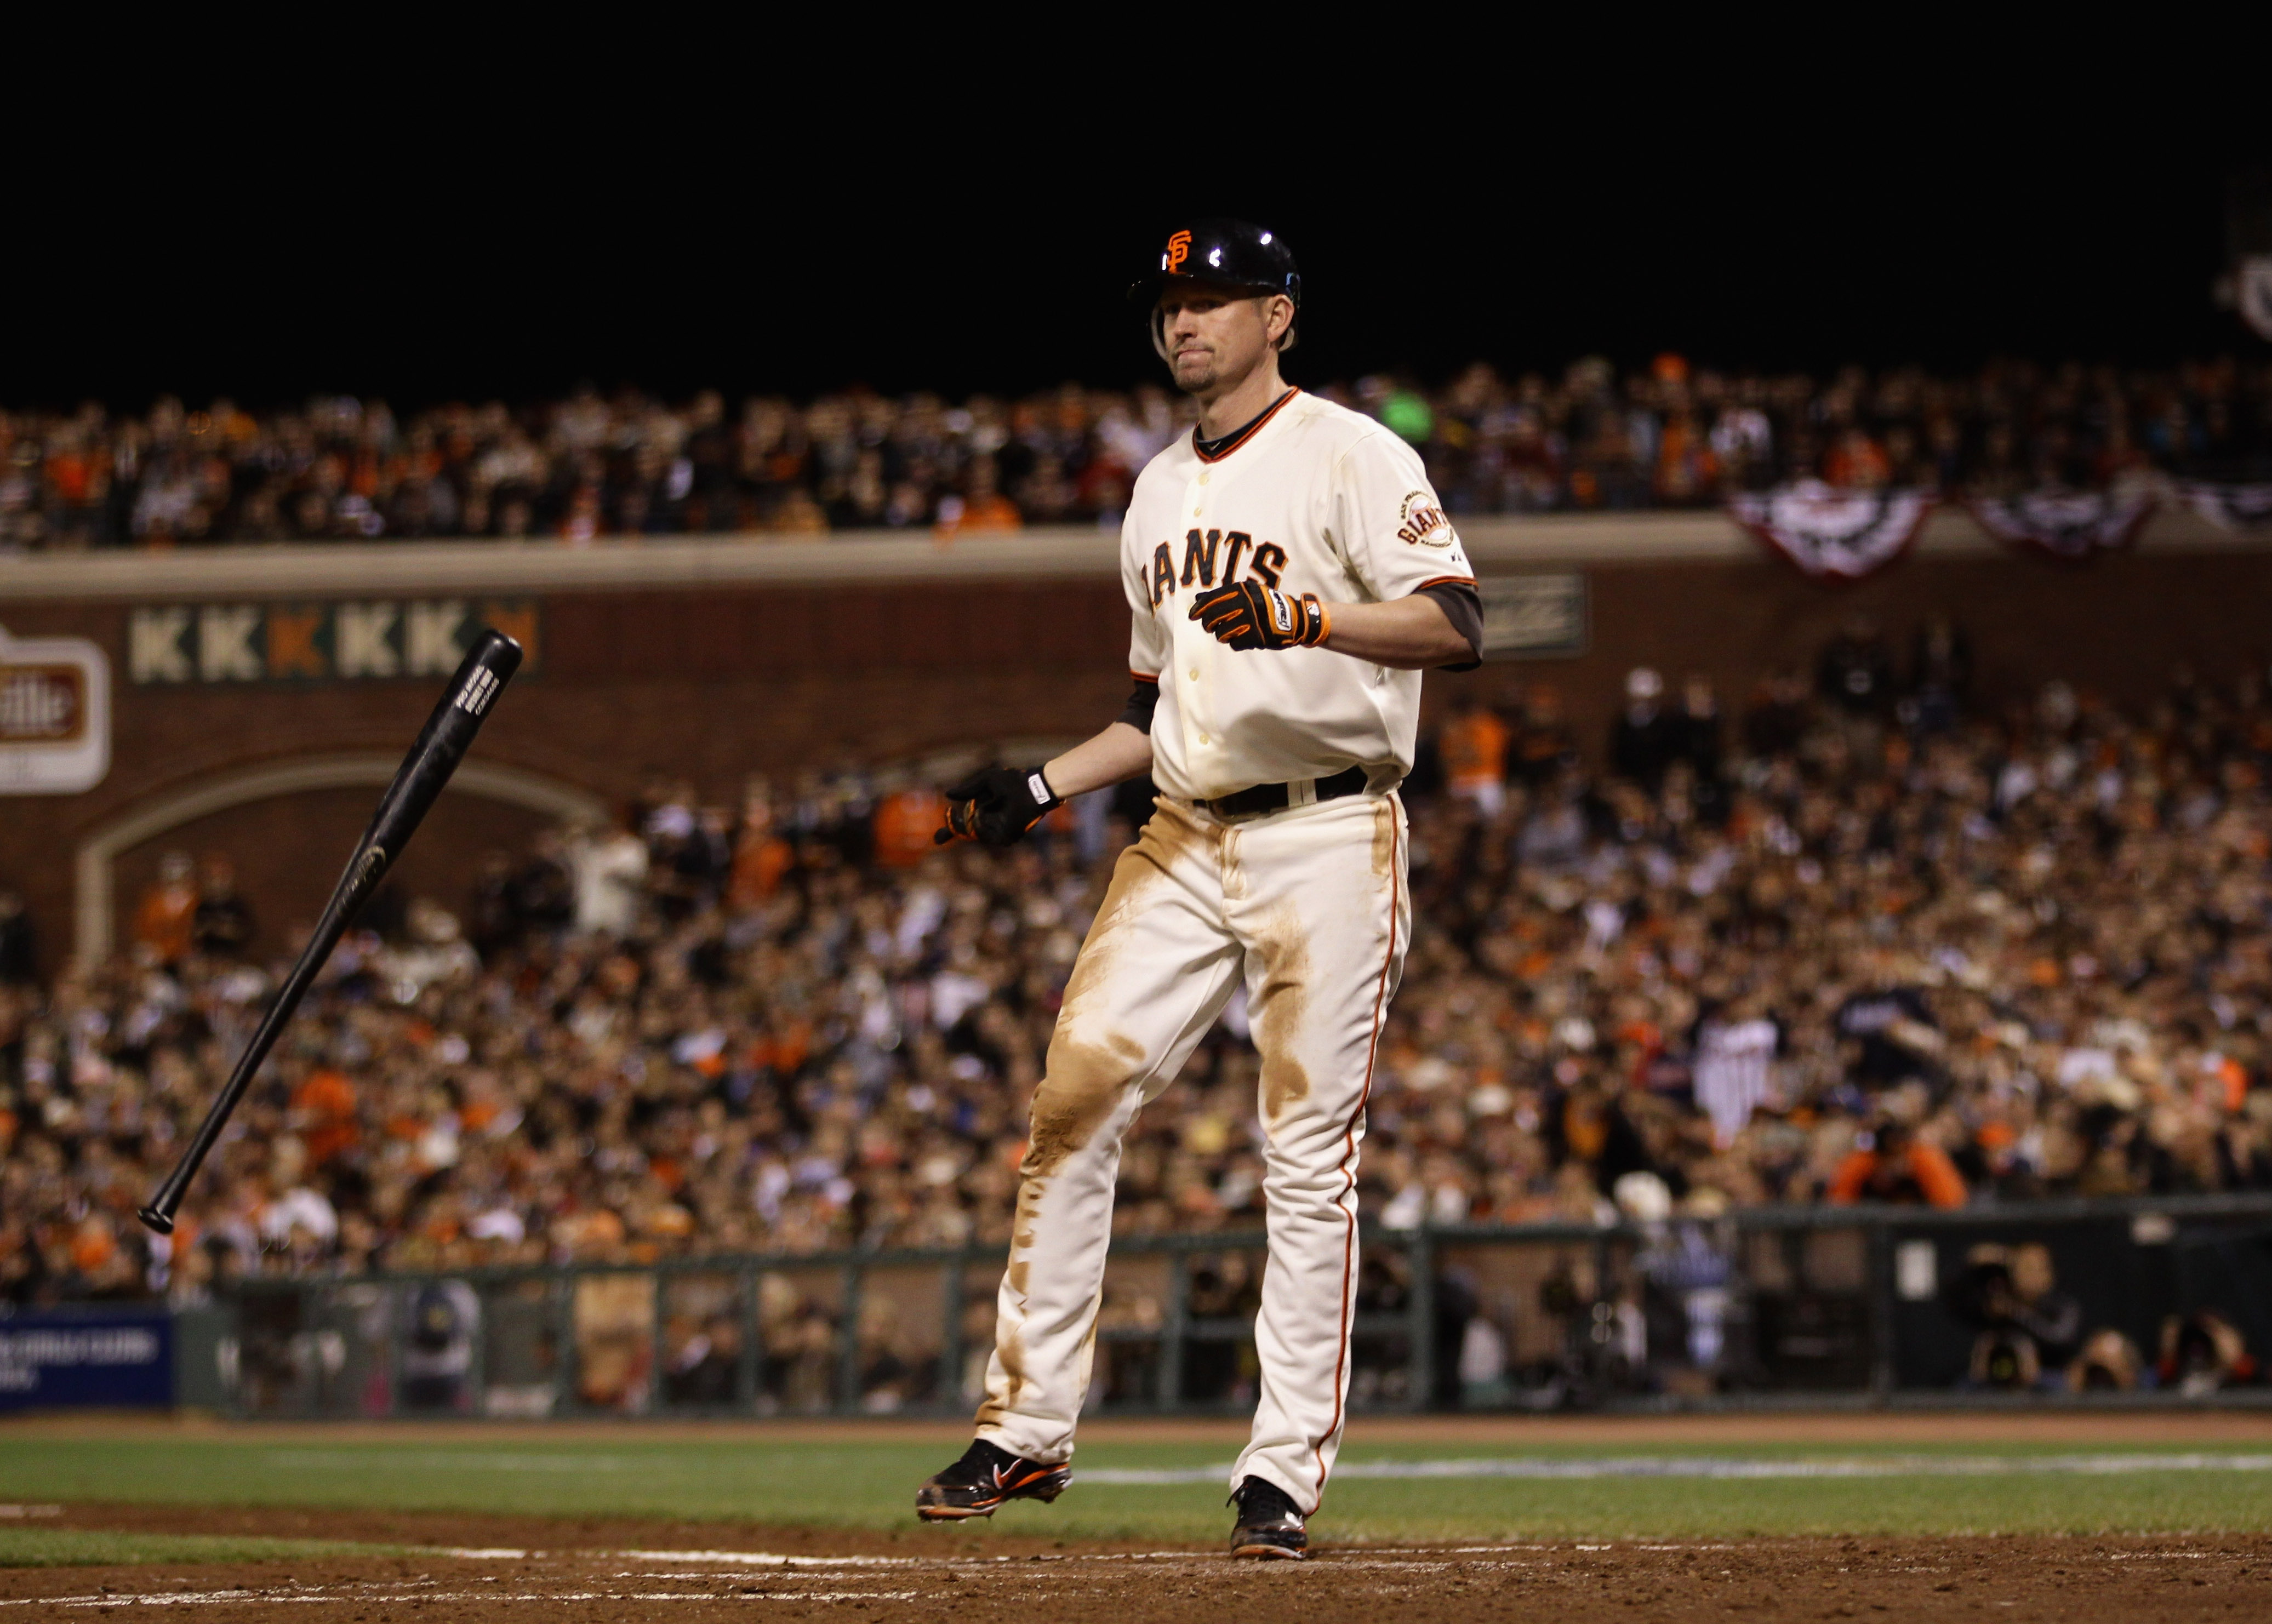 SAN FRANCISCO - OCTOBER 07:  Aubrey Huff #17 of the San Francisco Giants tosses his bat after he struck out with runners on second and third base to end the third inning of their game against the Atlanta Braves in game 1 of the NLDS at AT&T Park on Octobe